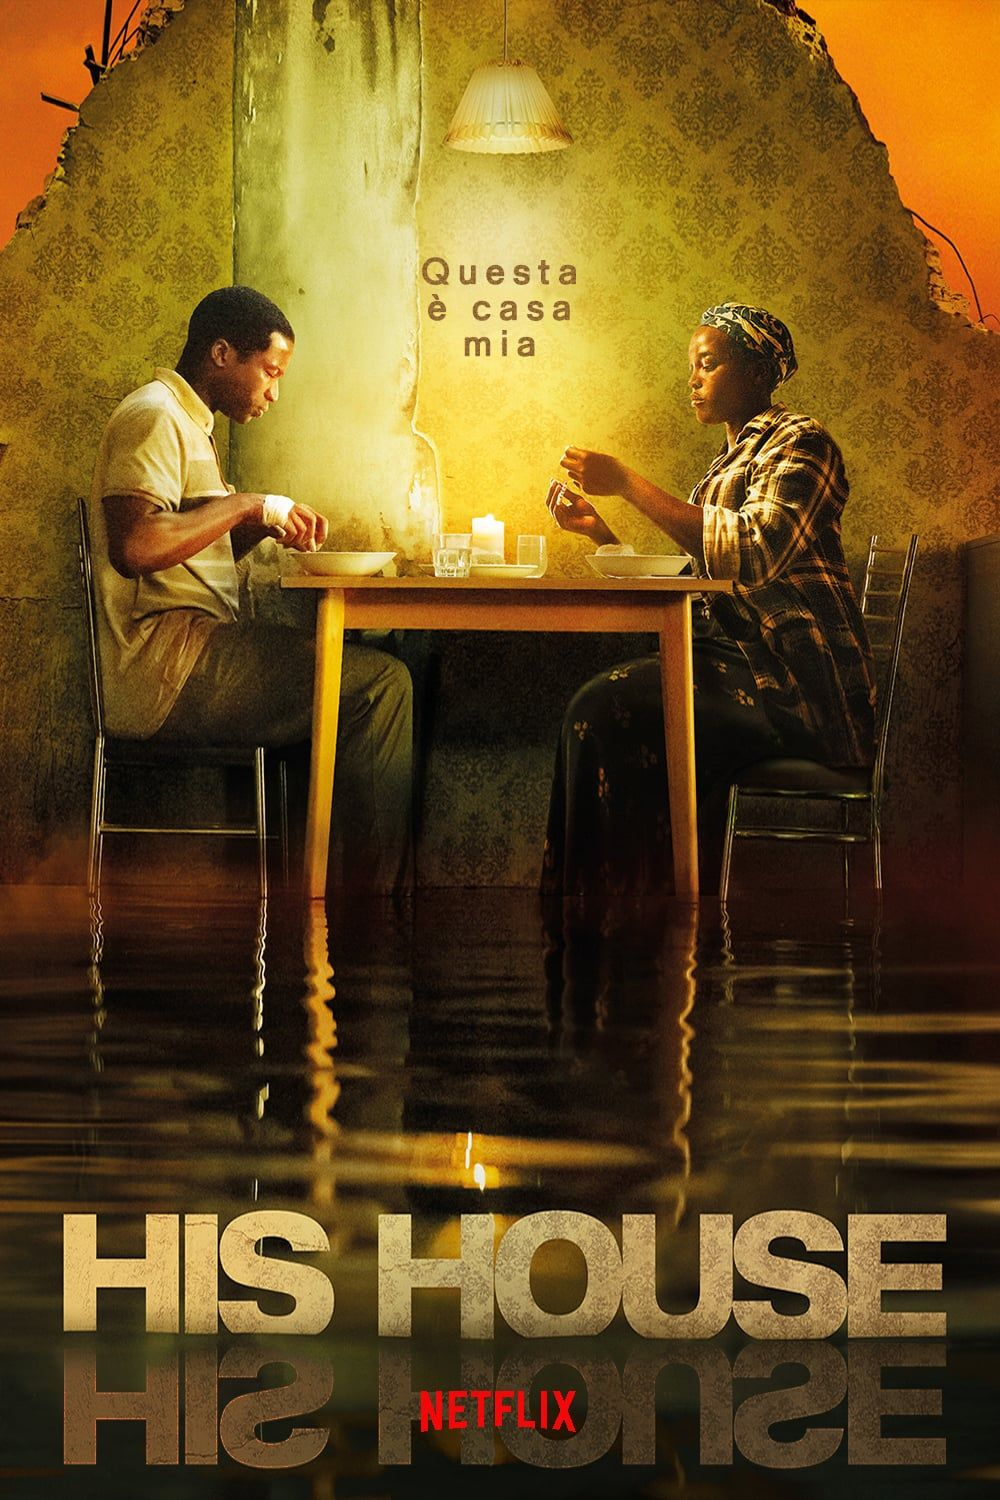 His House 2020 Movies Online Free Movies Online Full Movies Online Free